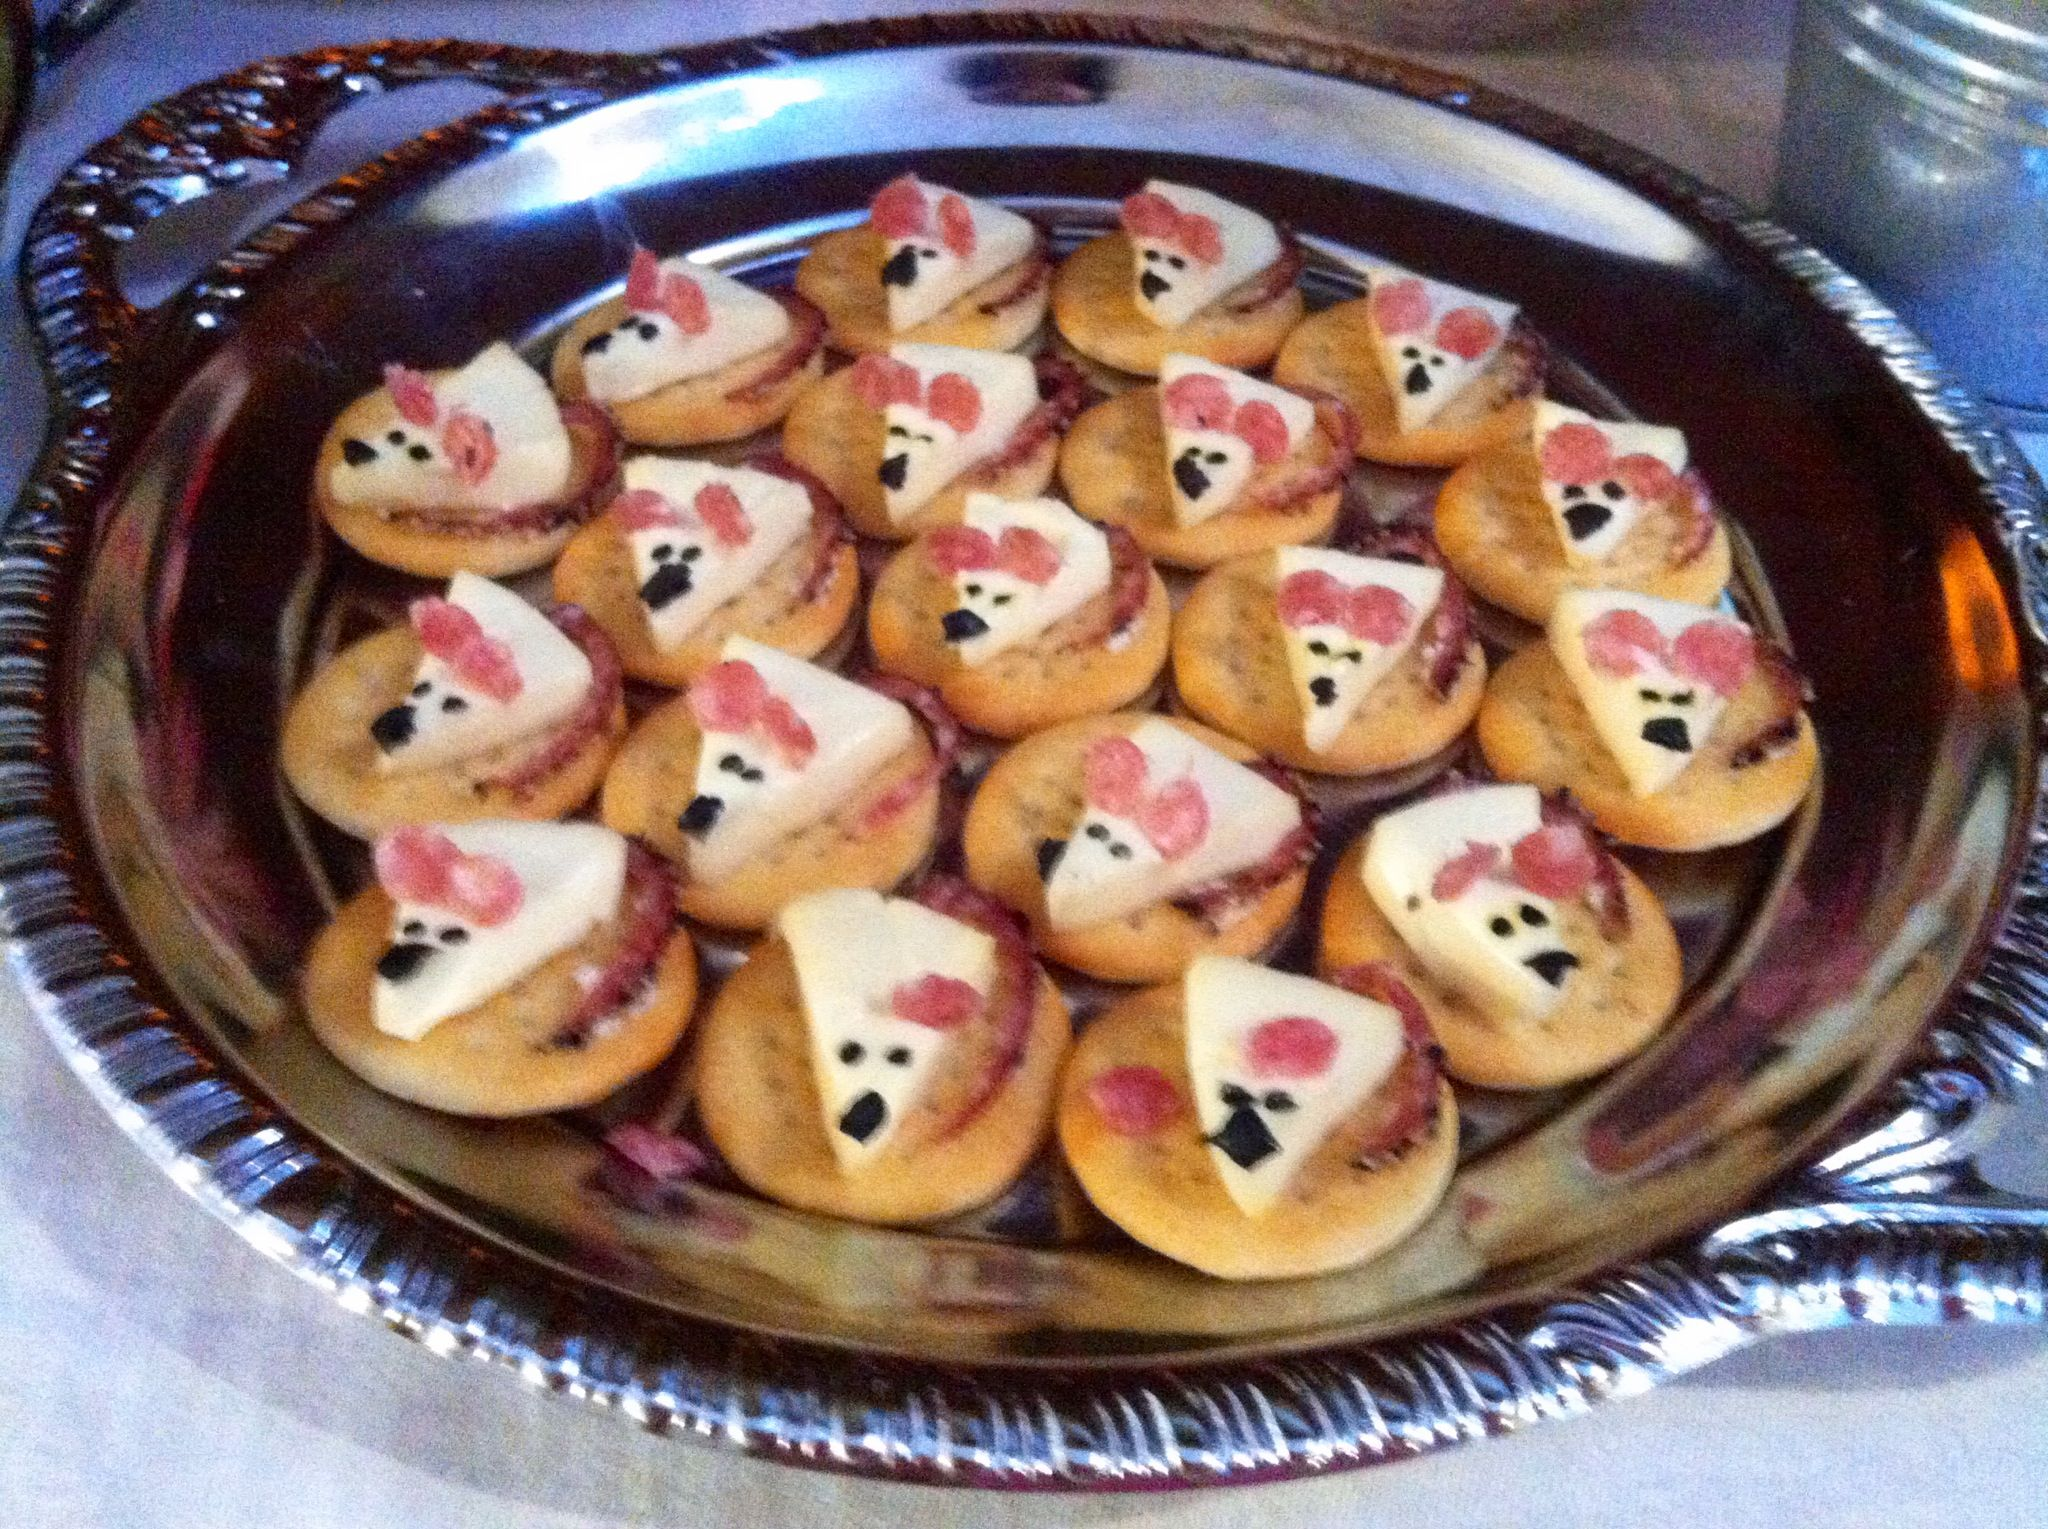 Cinderella 5th Birthday Party Food Idea Mice Made By Using Mini Cheddar Biscuits Slice